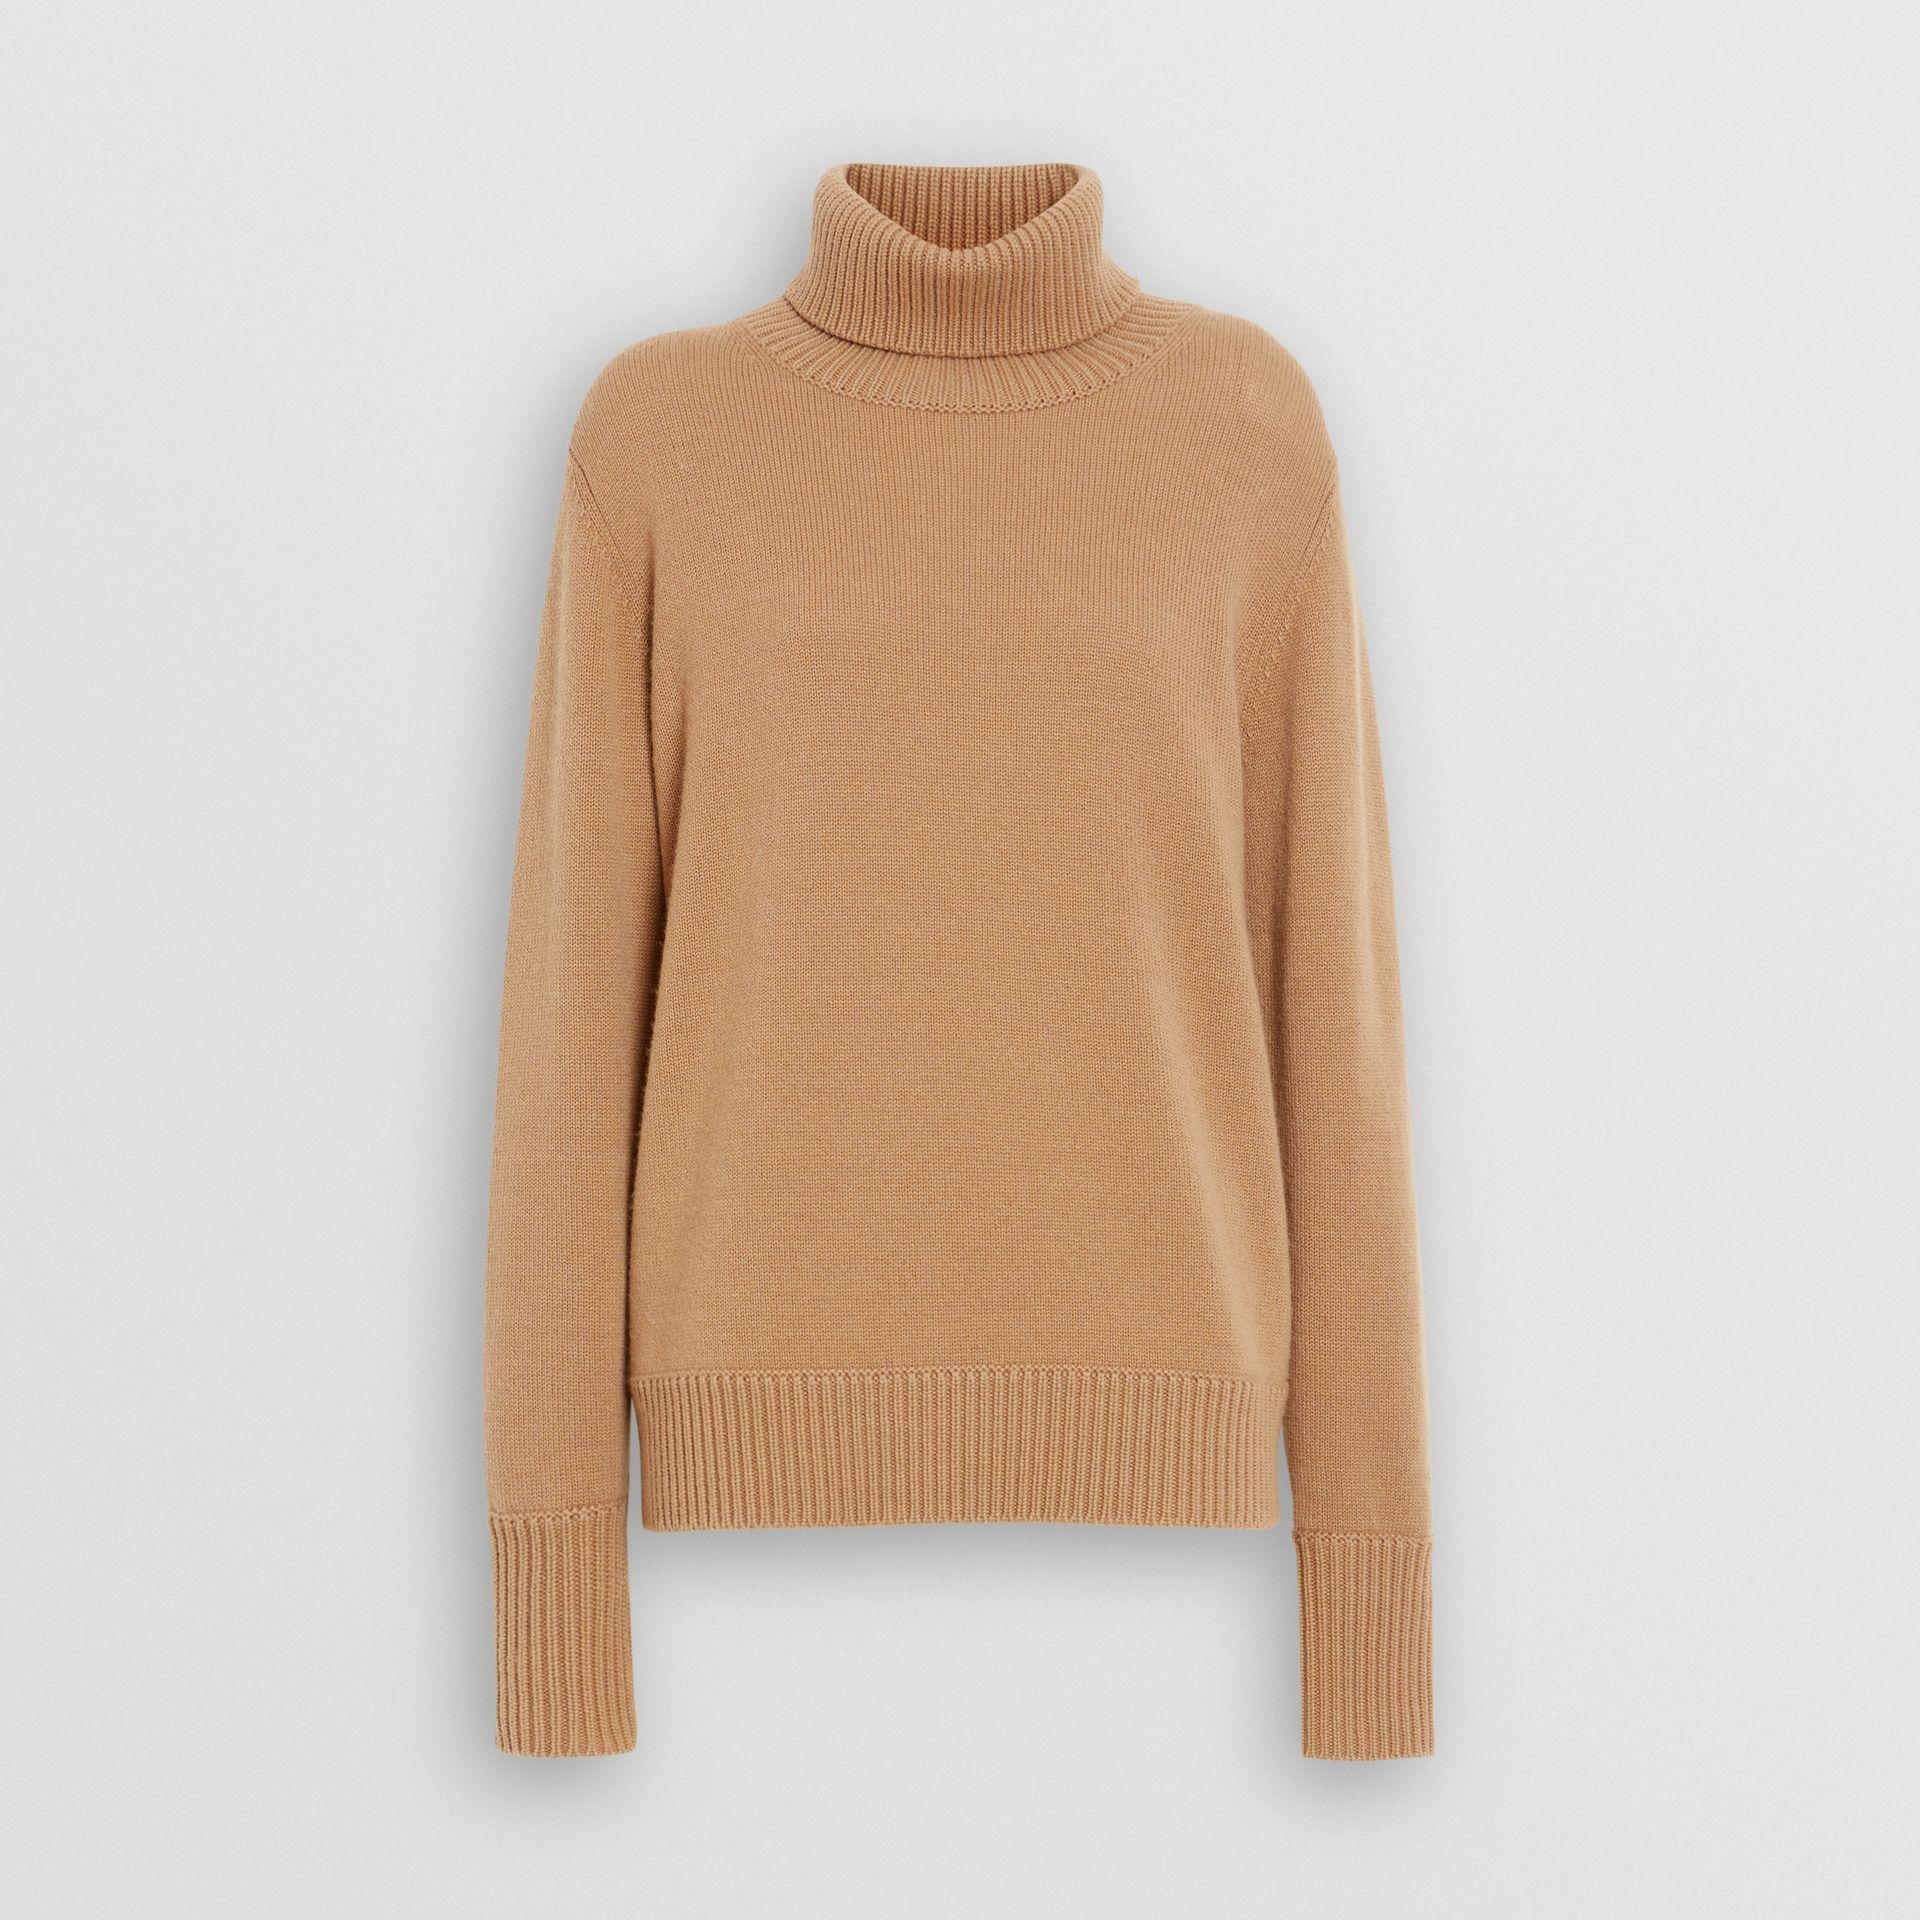 Embroidered Crest Cashmere Roll-neck Sweater in Camel - Women | Burberry United States - gallery image 3